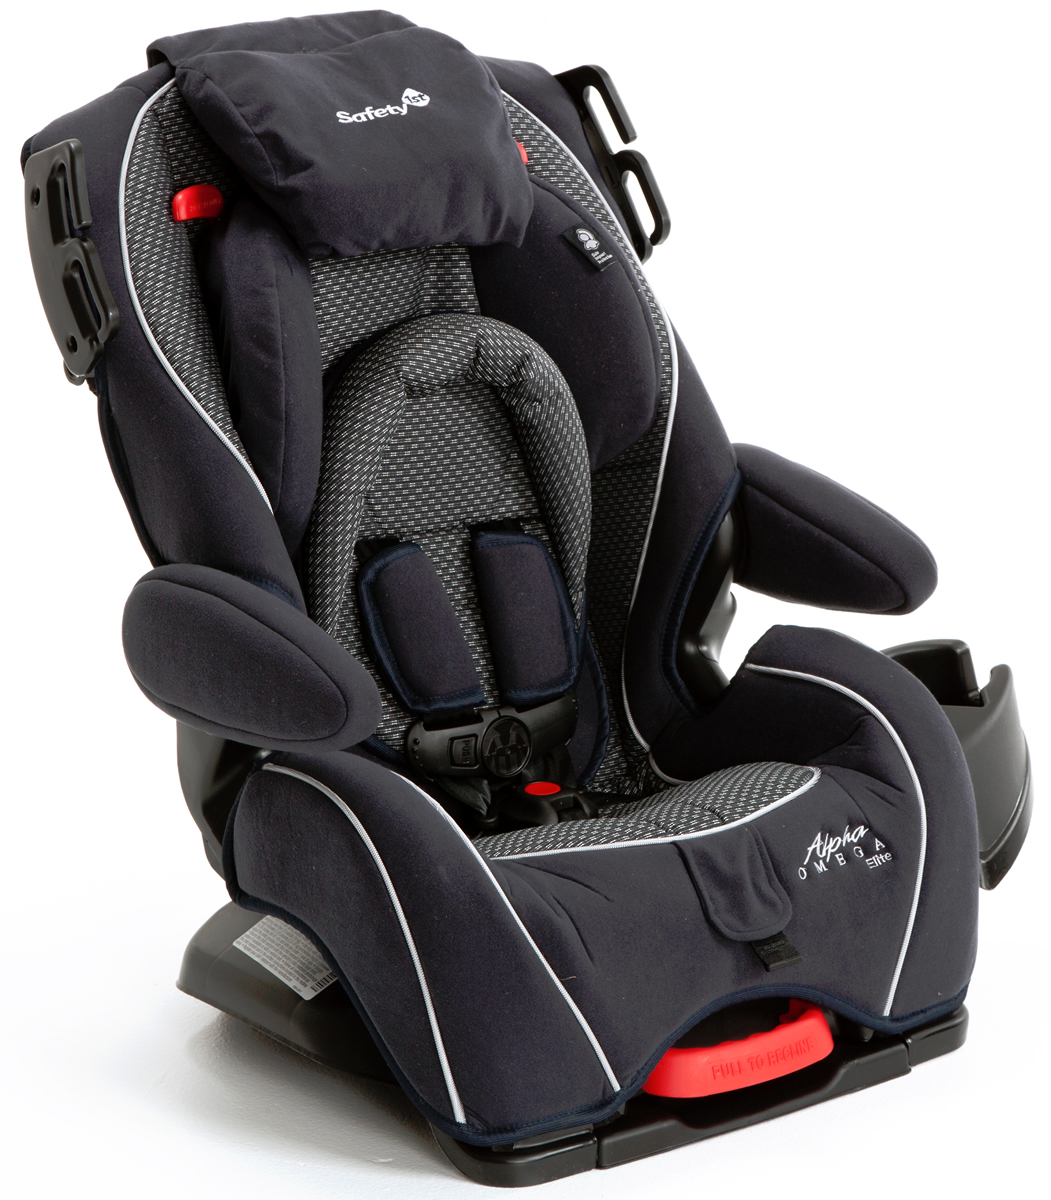 Glancing Safety 1st Cc061 Alpha Omega Elite Convertible Car Seat Bromley 16 Safety 1st Car Seat Air 65 Safety 1st Car Seat Base baby Safety 1st Car Seat